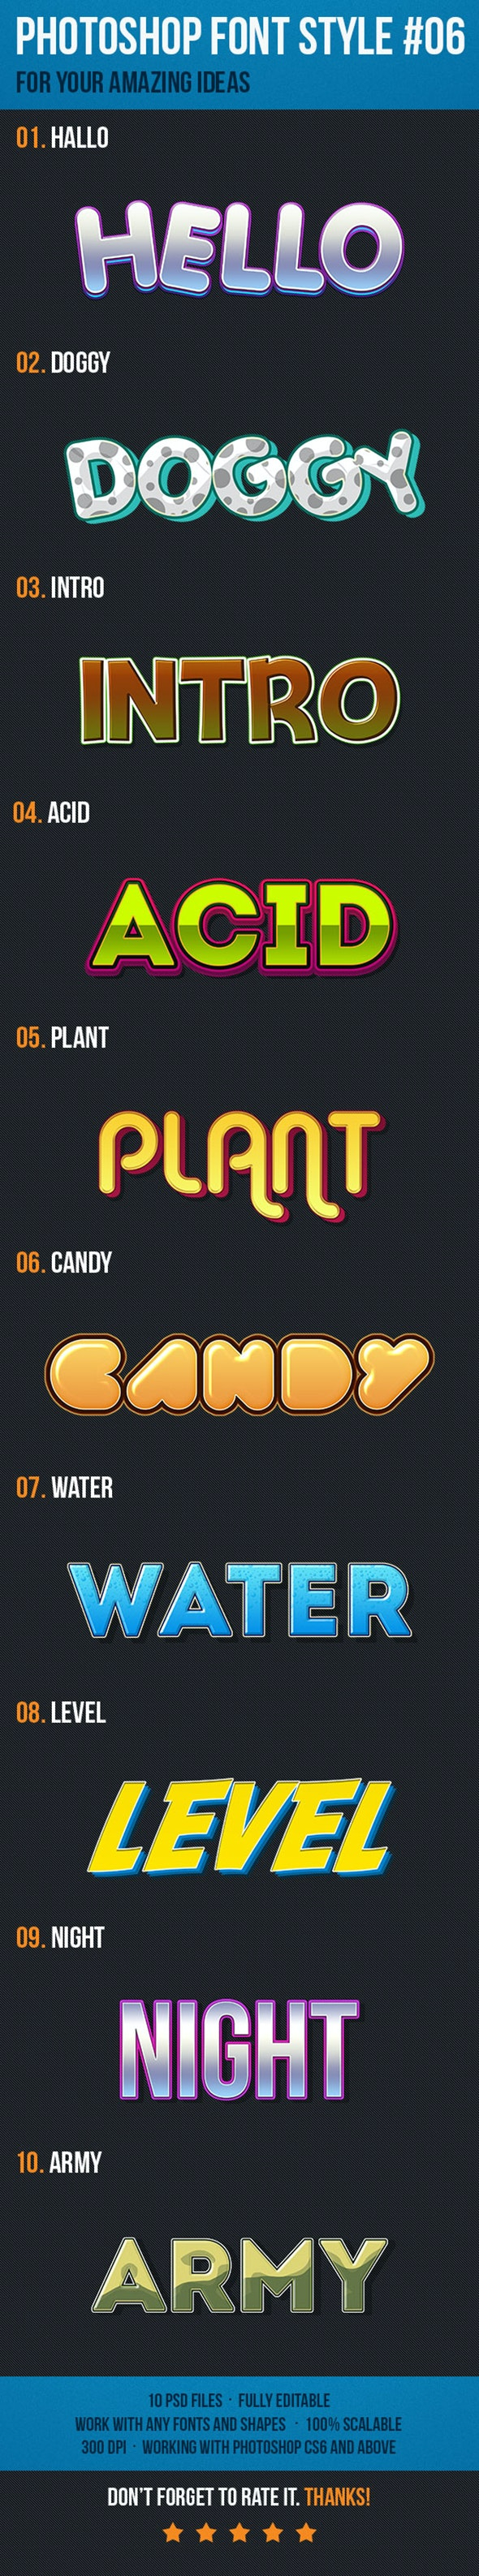 10 Font Style for Game Logo #06 - Text Effects Styles